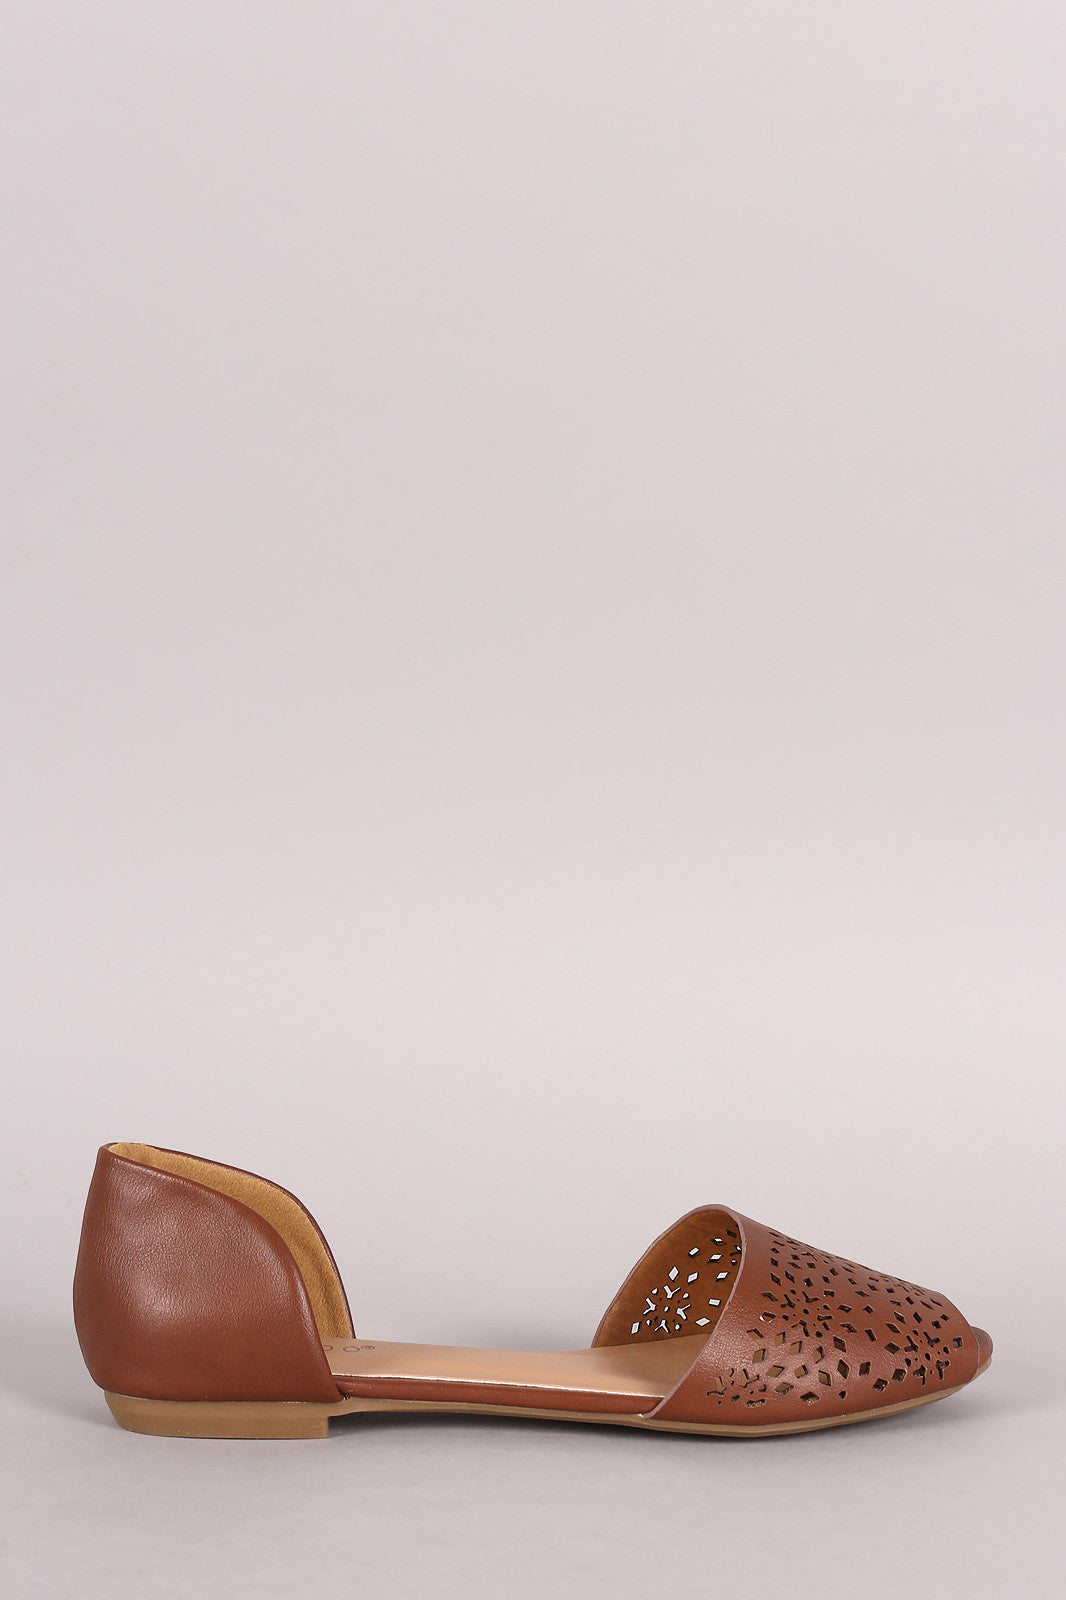 Bamboo Perforated Peep Toe Flat - Thick 'N' Curvy Shop - 1